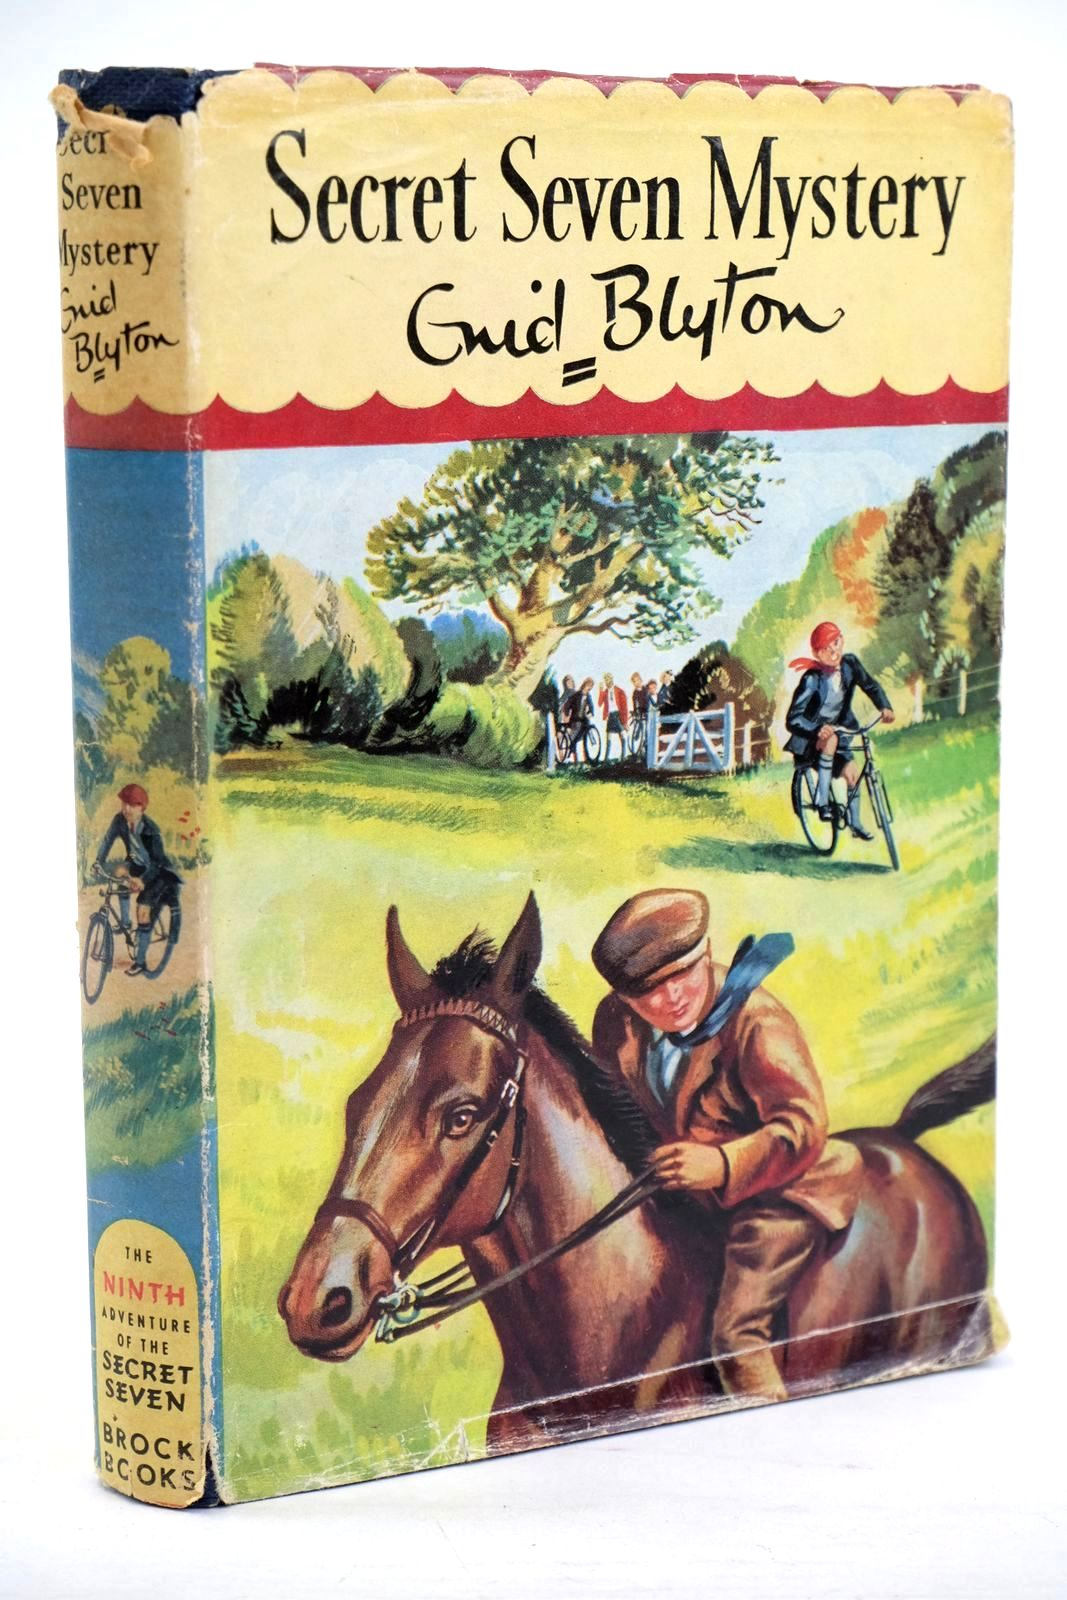 Photo of SECRET SEVEN MYSTERY written by Blyton, Enid illustrated by Sharrocks, Burgess published by Brockhampton Press (STOCK CODE: 1320340)  for sale by Stella & Rose's Books